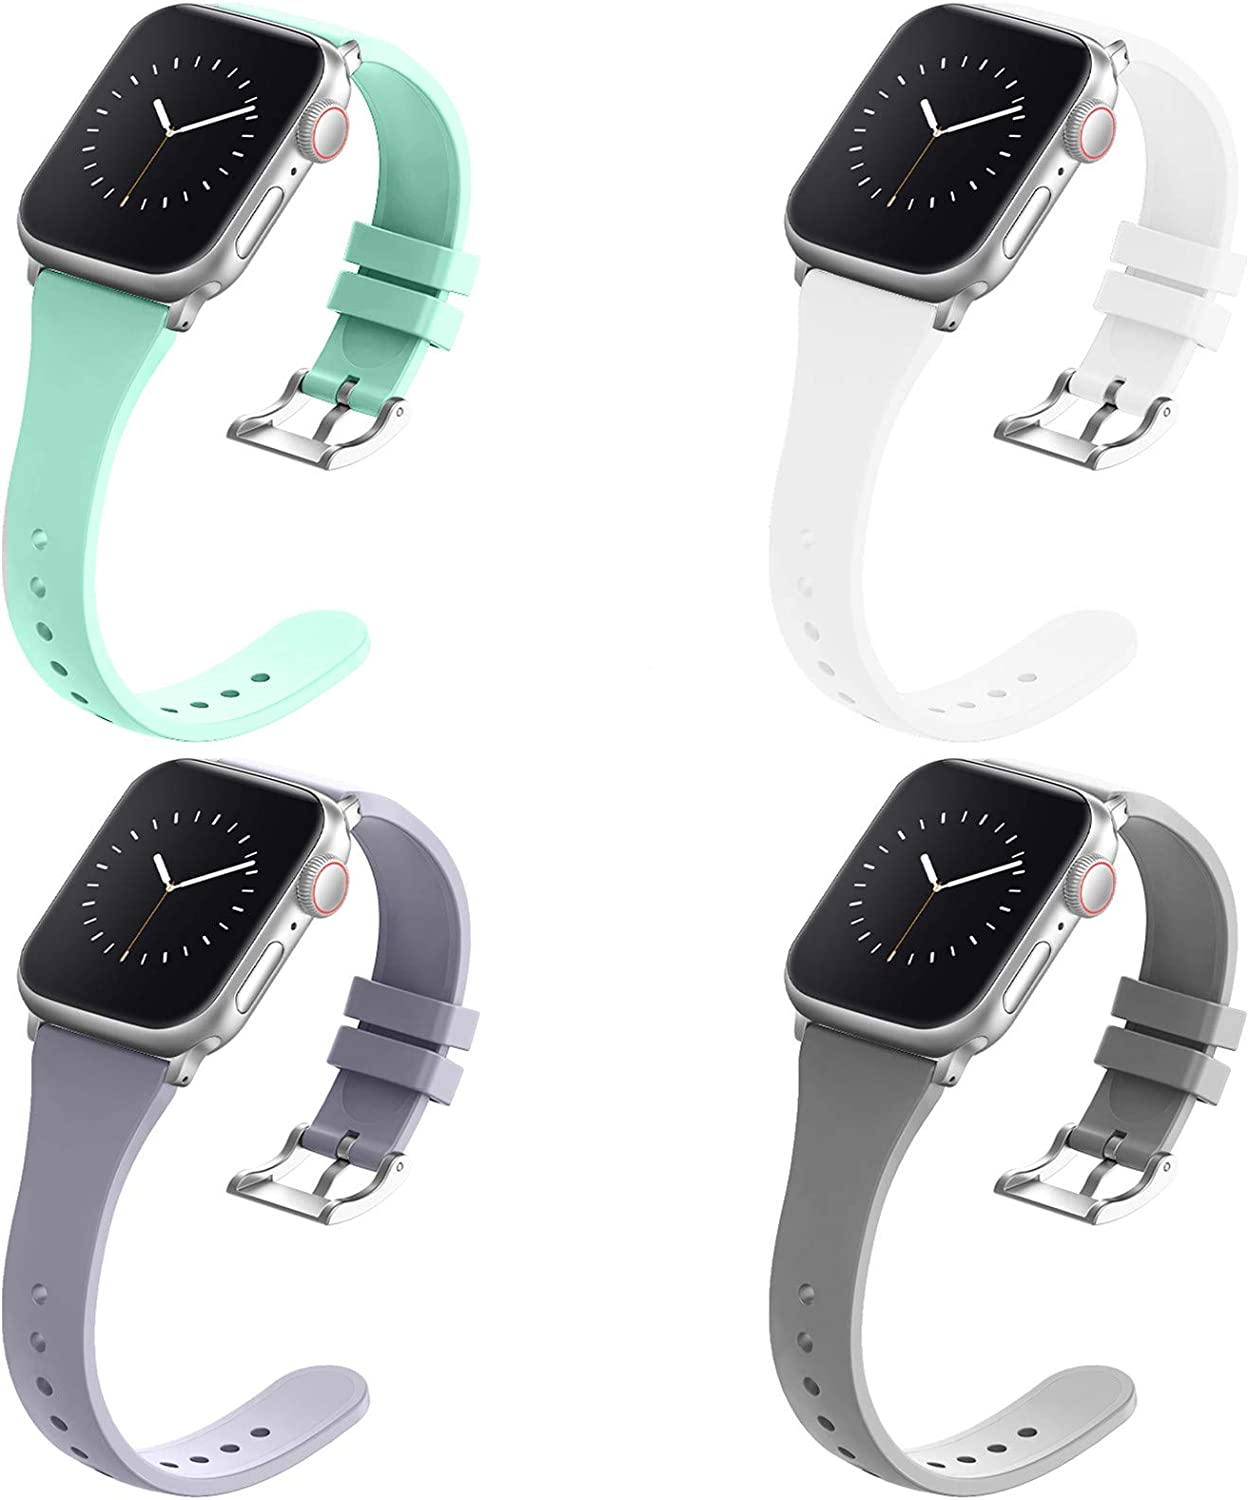 Adepoy Compatible with Apple Watch Bands 38MM 40MM 42MM 44MM for Women Men, Soft Silicone Narrow Slim Replacement Sport Wristbands for iWatch Series 6 5 4 3 2 1 SE